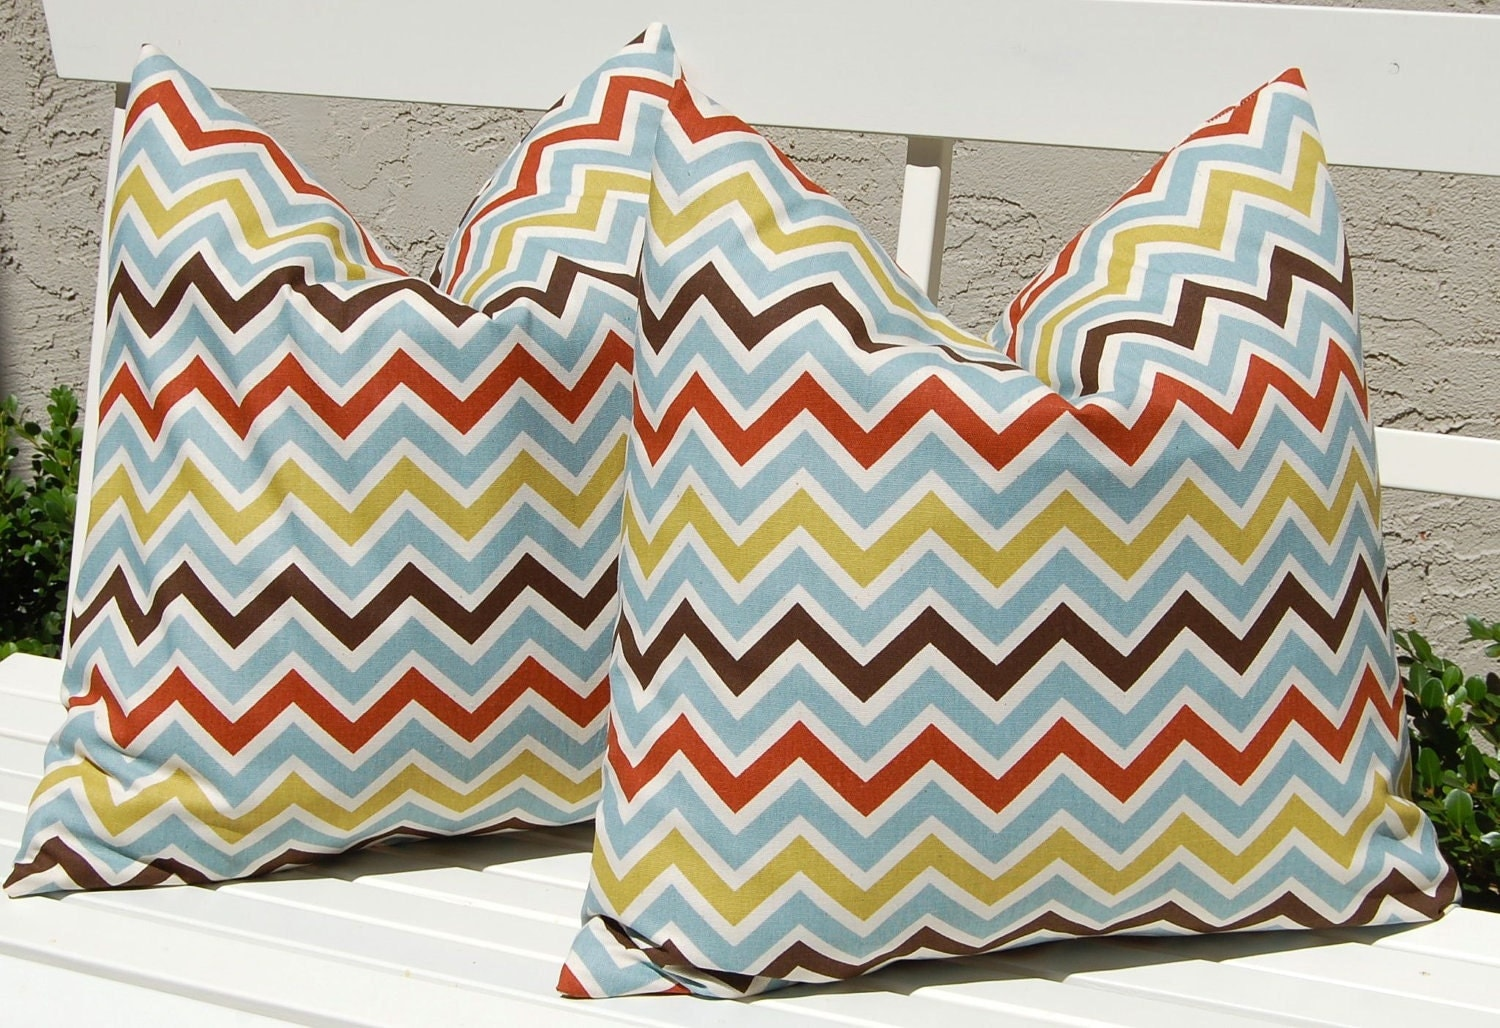 Decorative Pillows Chevron Throw Pillow Covers Missoni Style 20 x 20 Inches - Brown, Rust, Blue and Olive Green on Natural Zig Zag Chevron